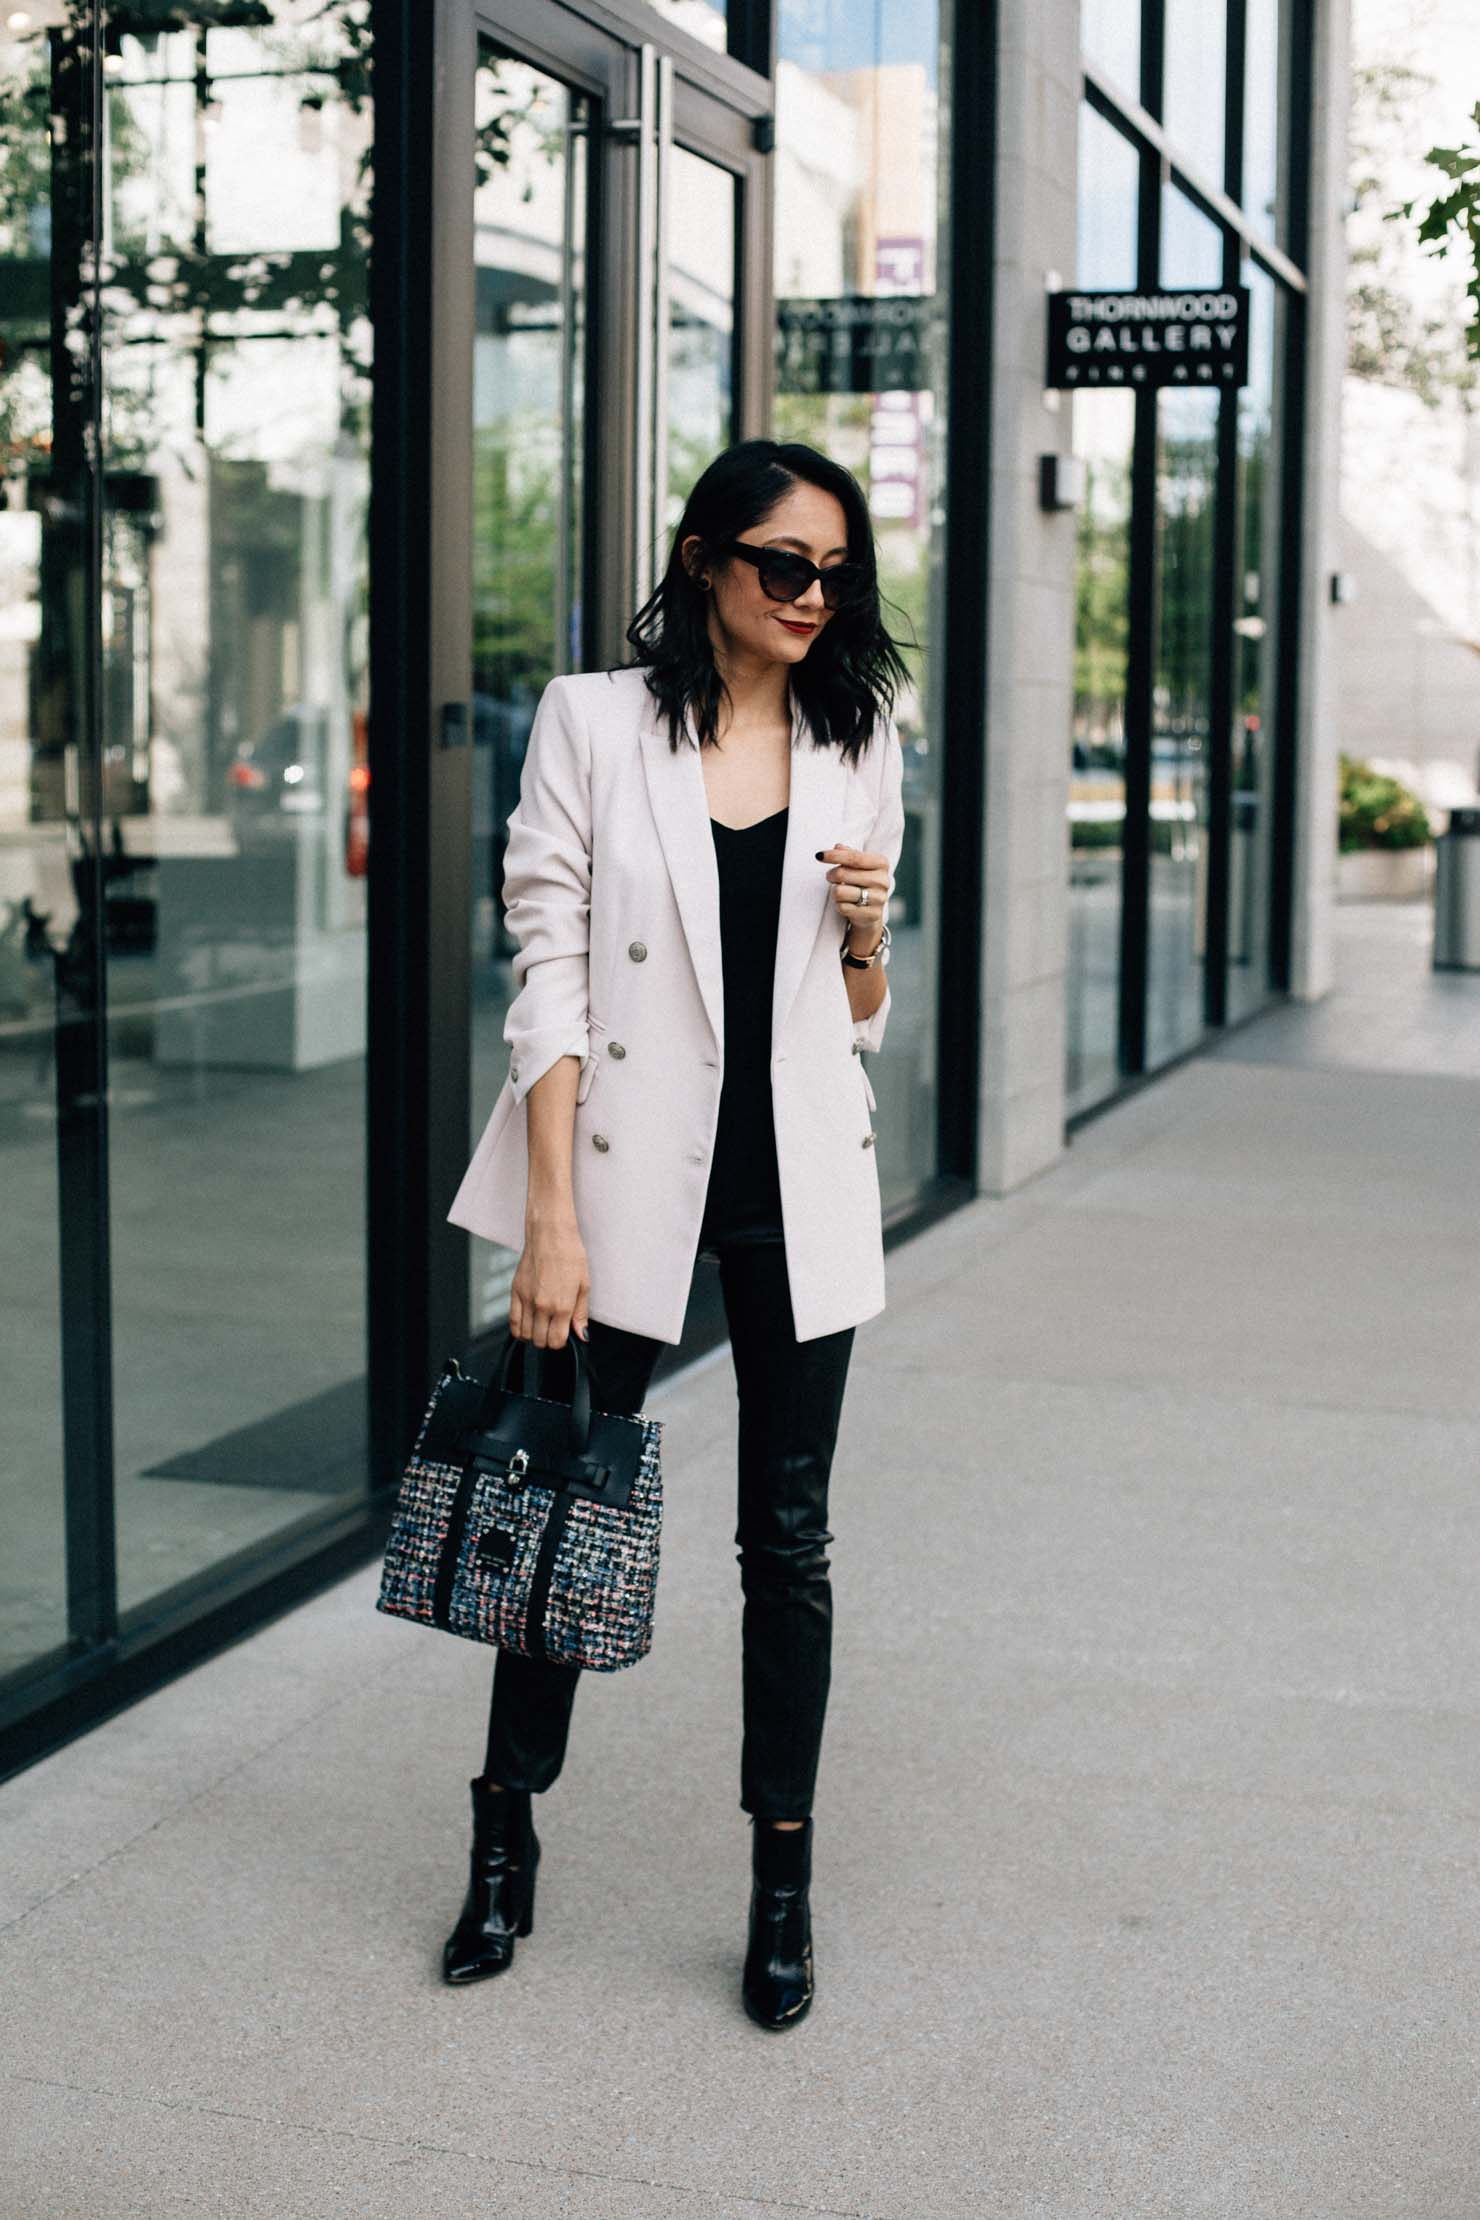 Lilly Beltran shows you how to style faux leather leggings for a chic street style fall look